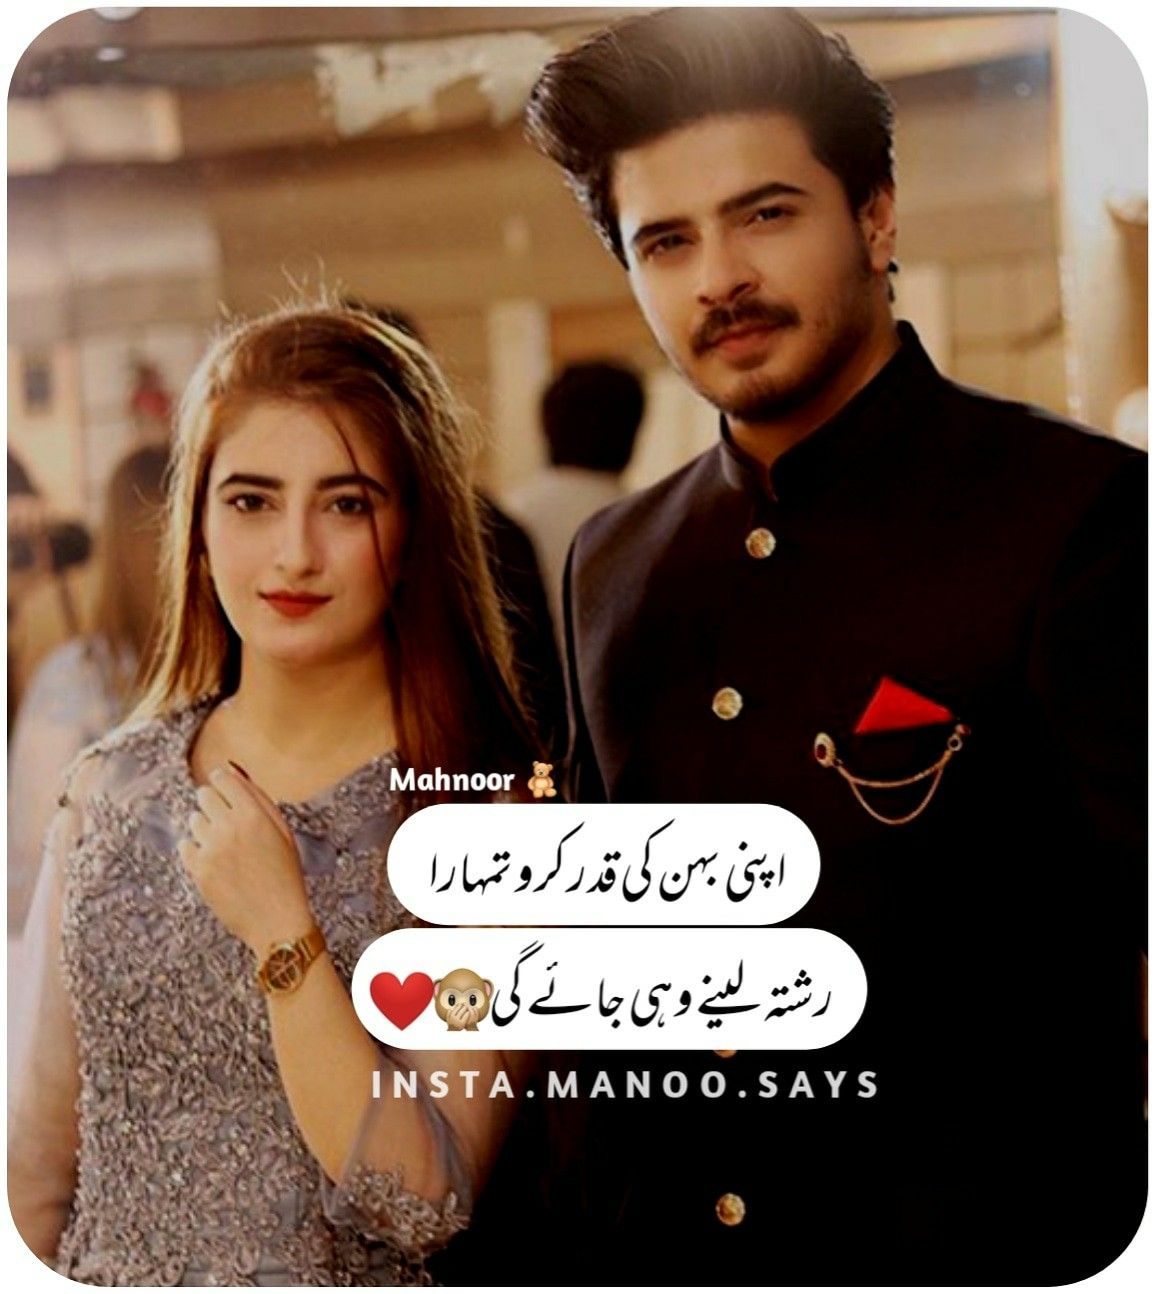 Pin By Mahnoor Ch On Manoo Says In 2020 Fun Quotes Funny Funny Quotes Best Quotes